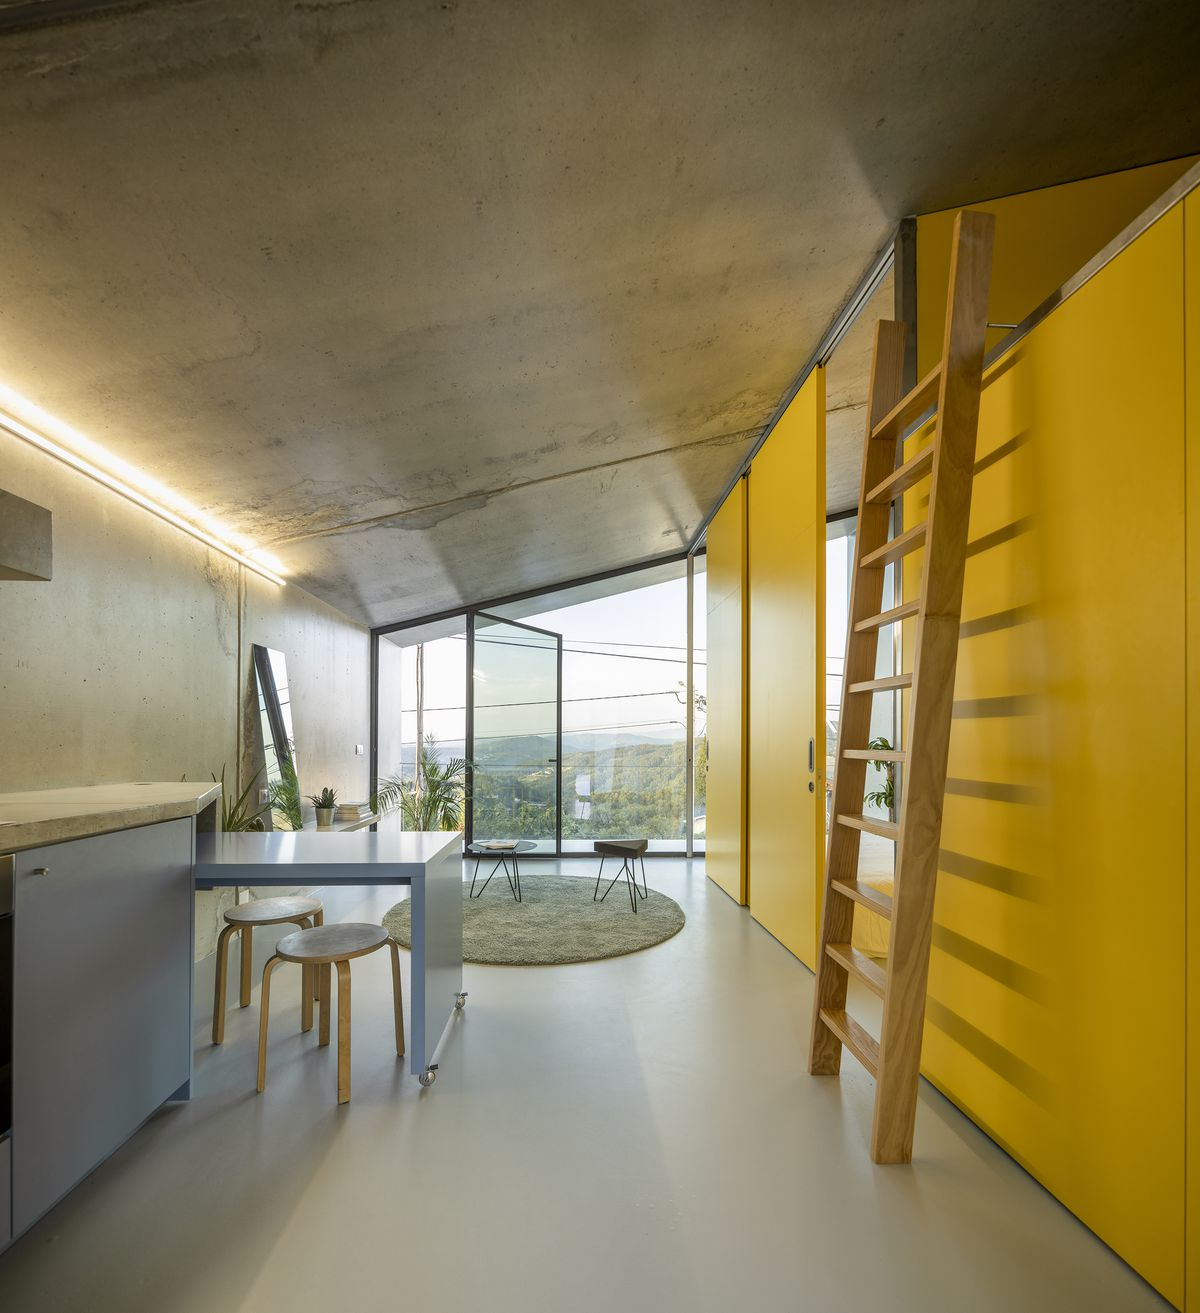 Compact kitchen featuring yellow wall